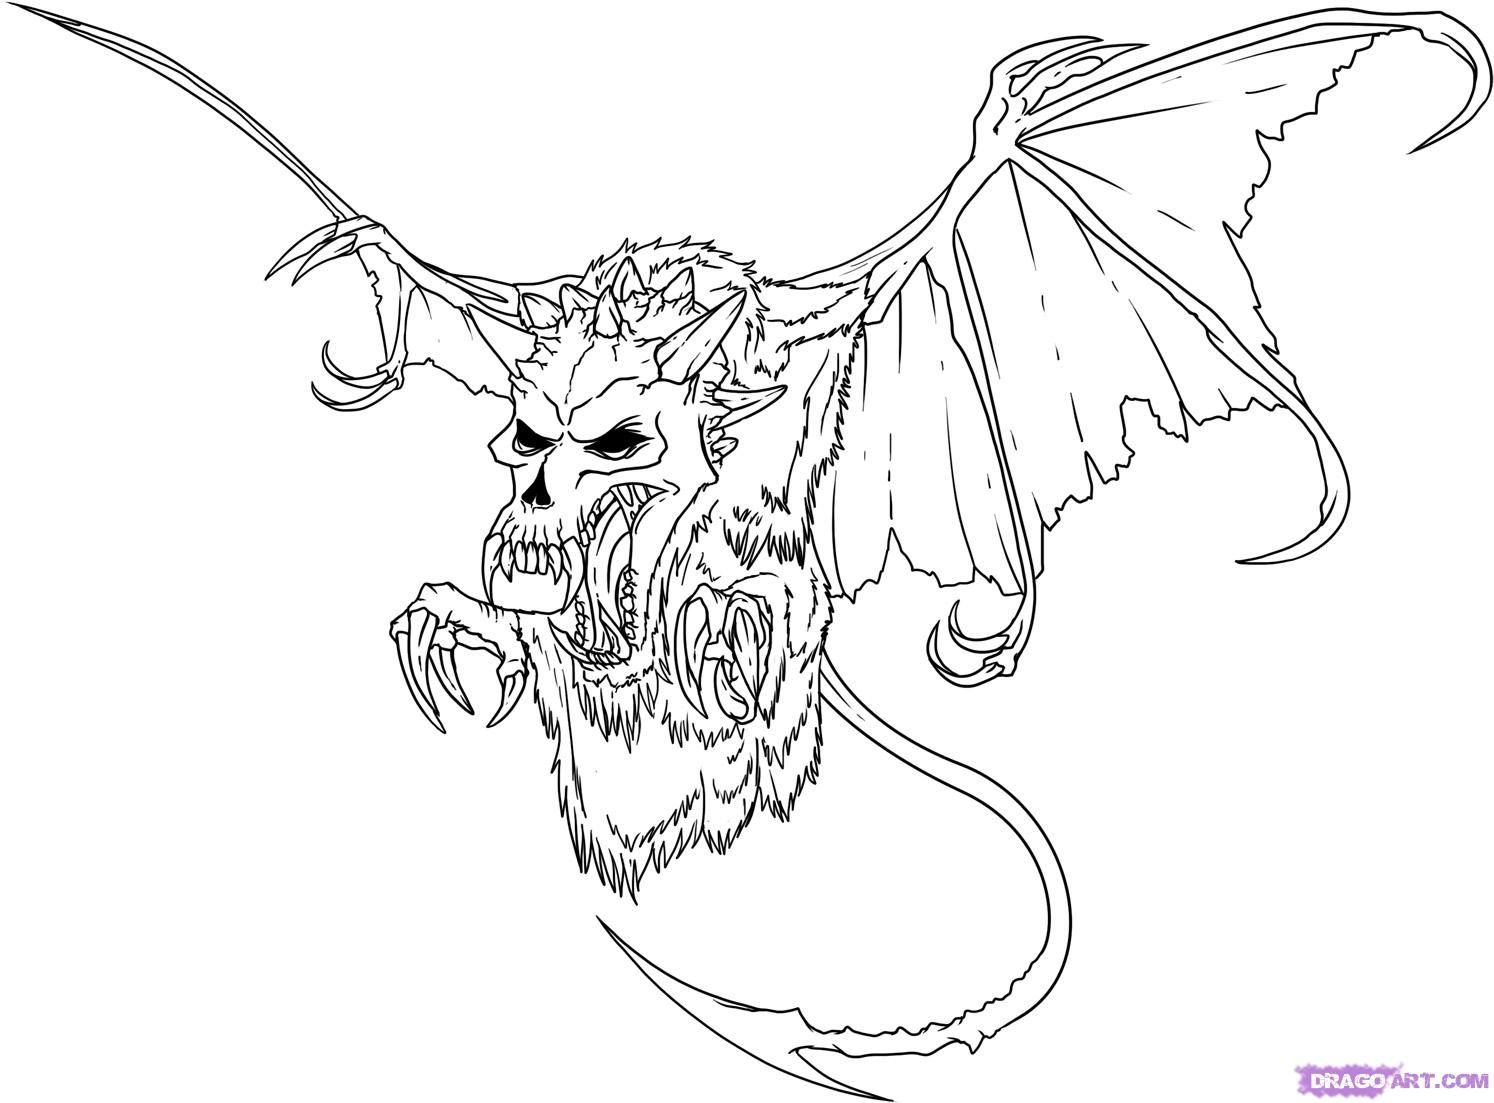 How To Draw An Evil Skull Step By Step Skulls Pop Culture Free Online Drawing Tutorial Ad Dragon Coloring Page Monster Coloring Pages Scary Coloring Pages